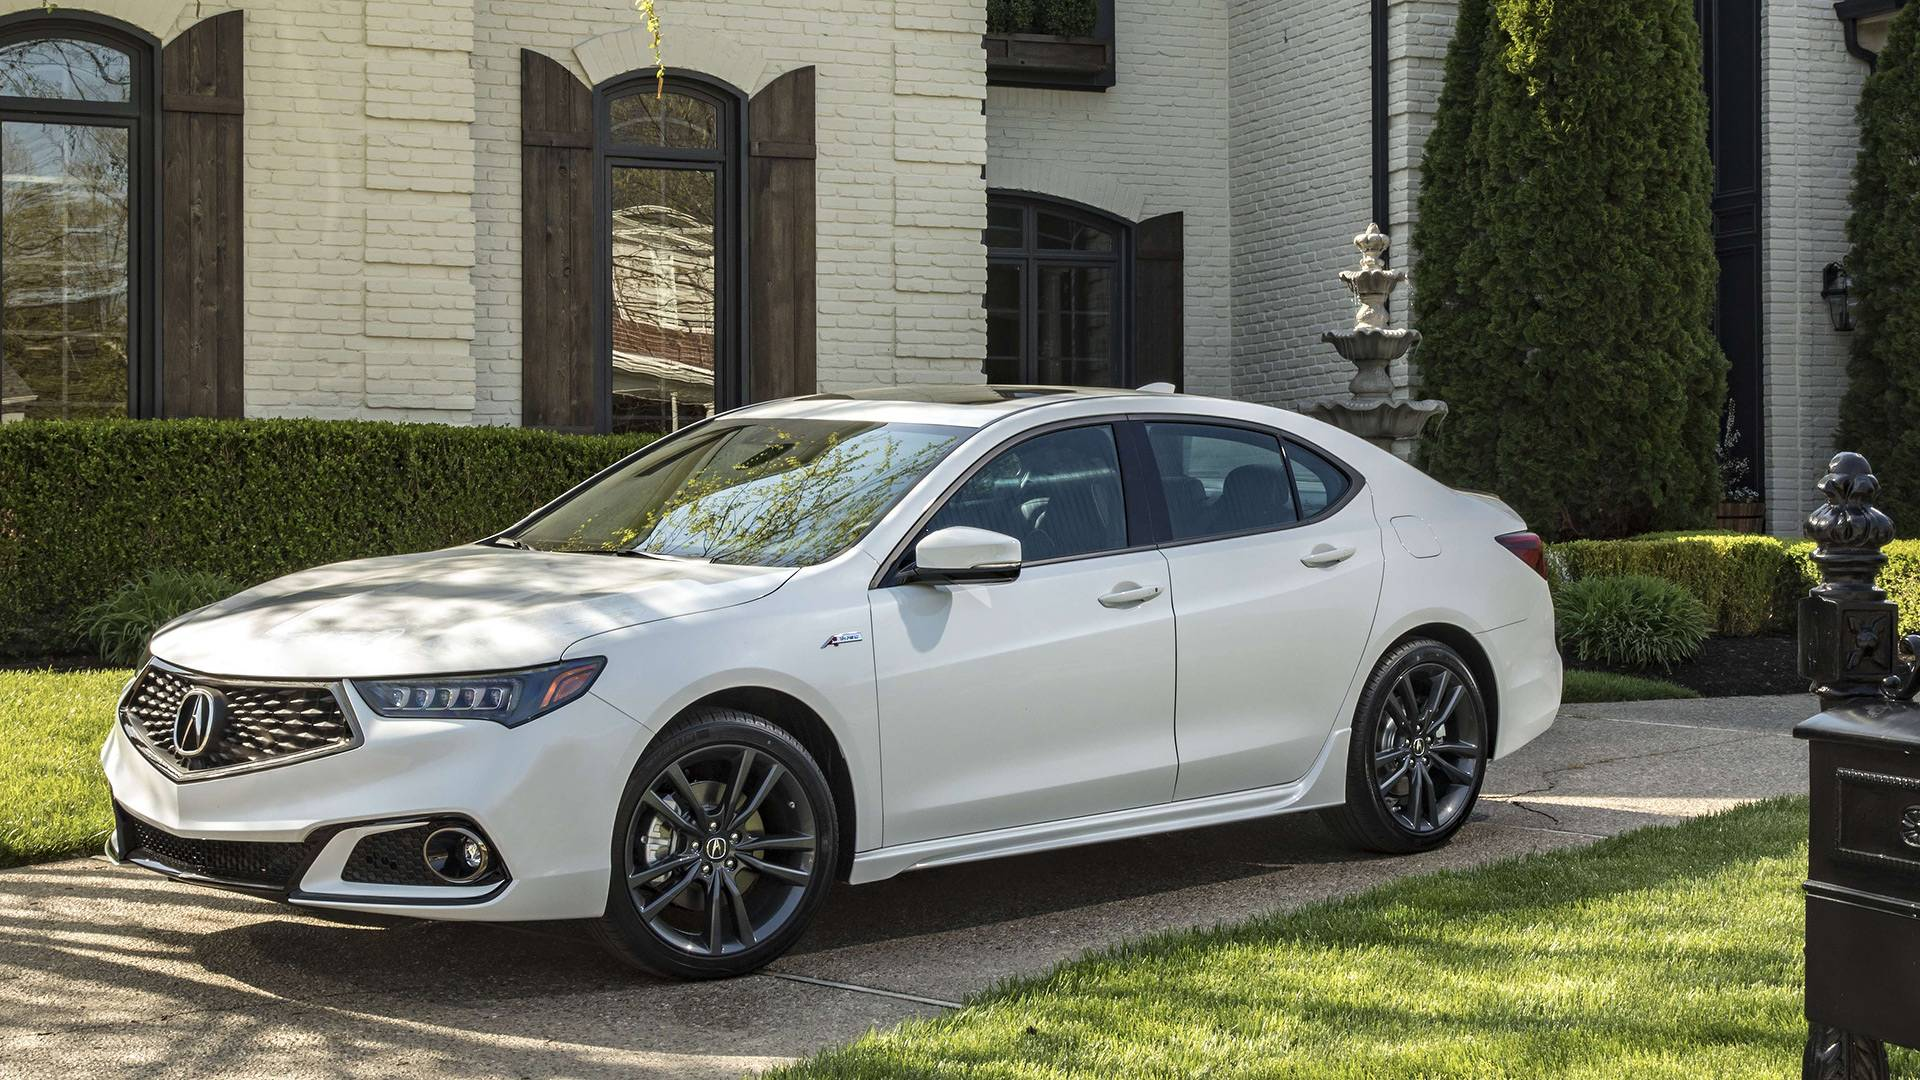 Acura TLX News and Reviews | Motor1 com